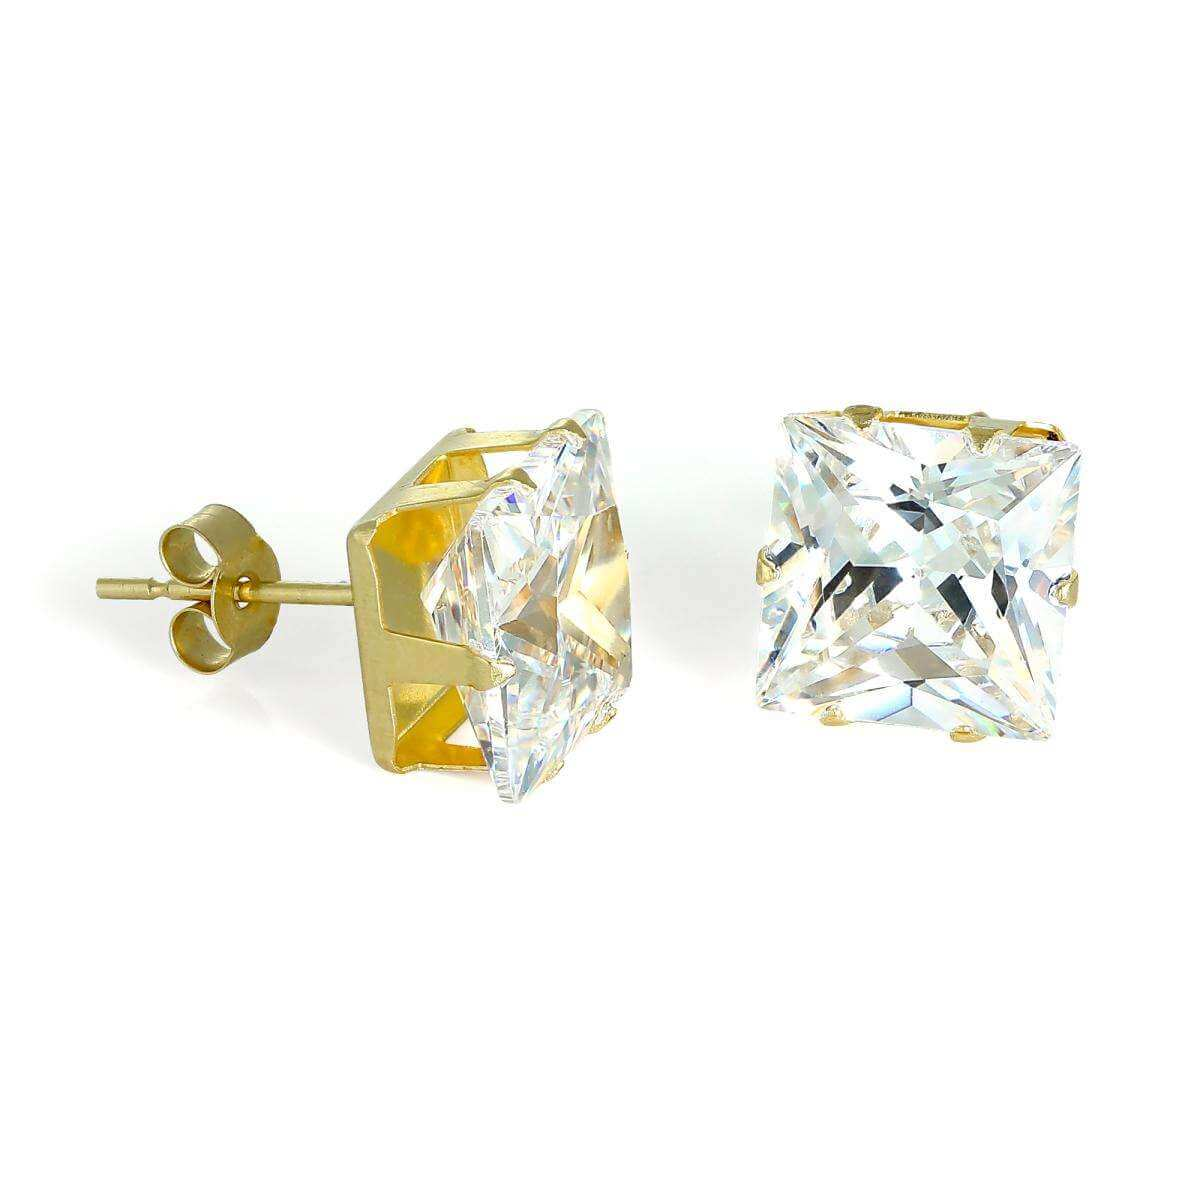 9ct Gold & 8mm Square CZ Crystal Stud Earrings